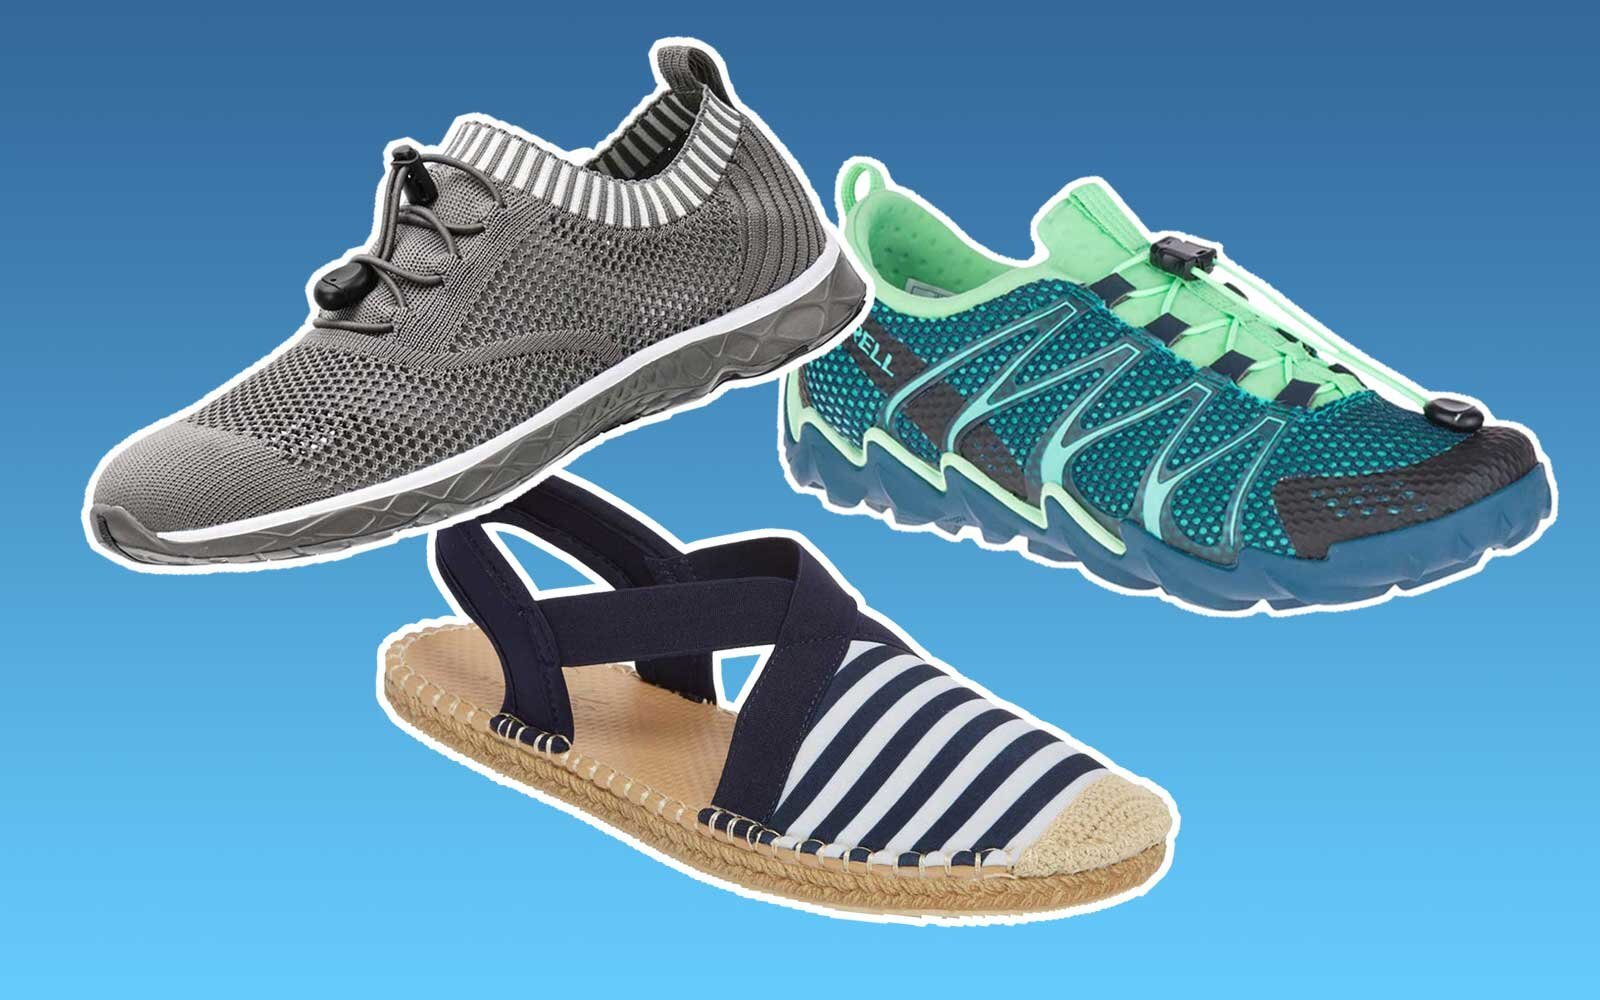 271c08453e56f The Best Water Shoes for Women in 2019 | Travel + Leisure